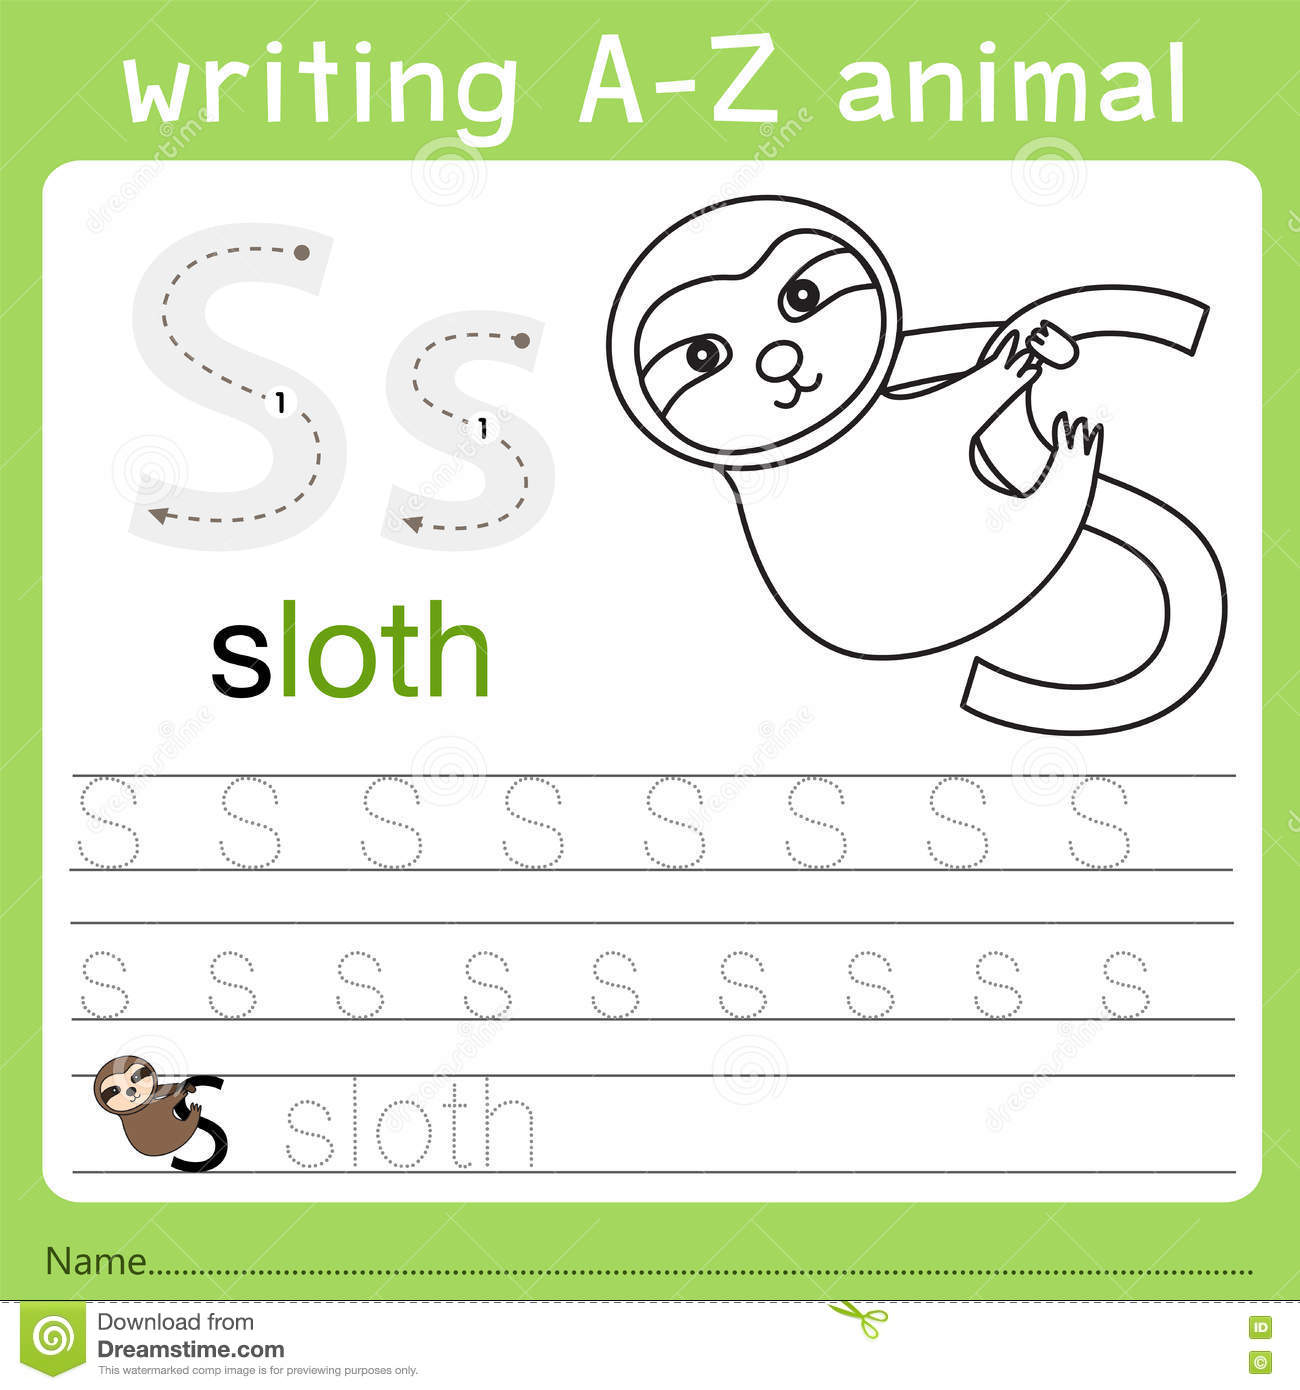 Illustrator del animal s del a-z de la escritura